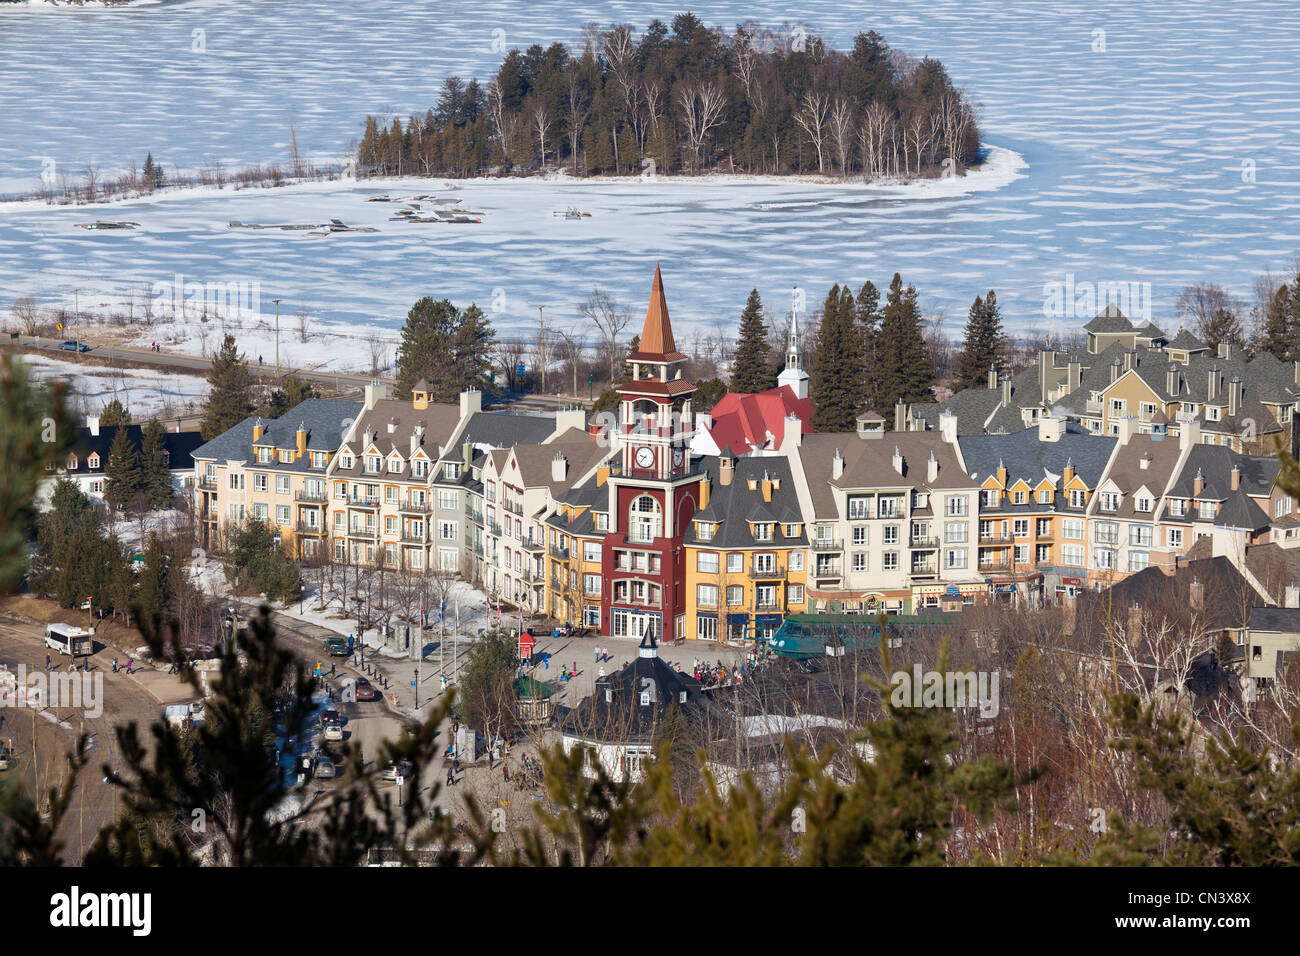 Canada, Quebec province, Laurentians region, Mont Tremblant, ski resort, the village and Tremblant lake frozen in - Stock Image